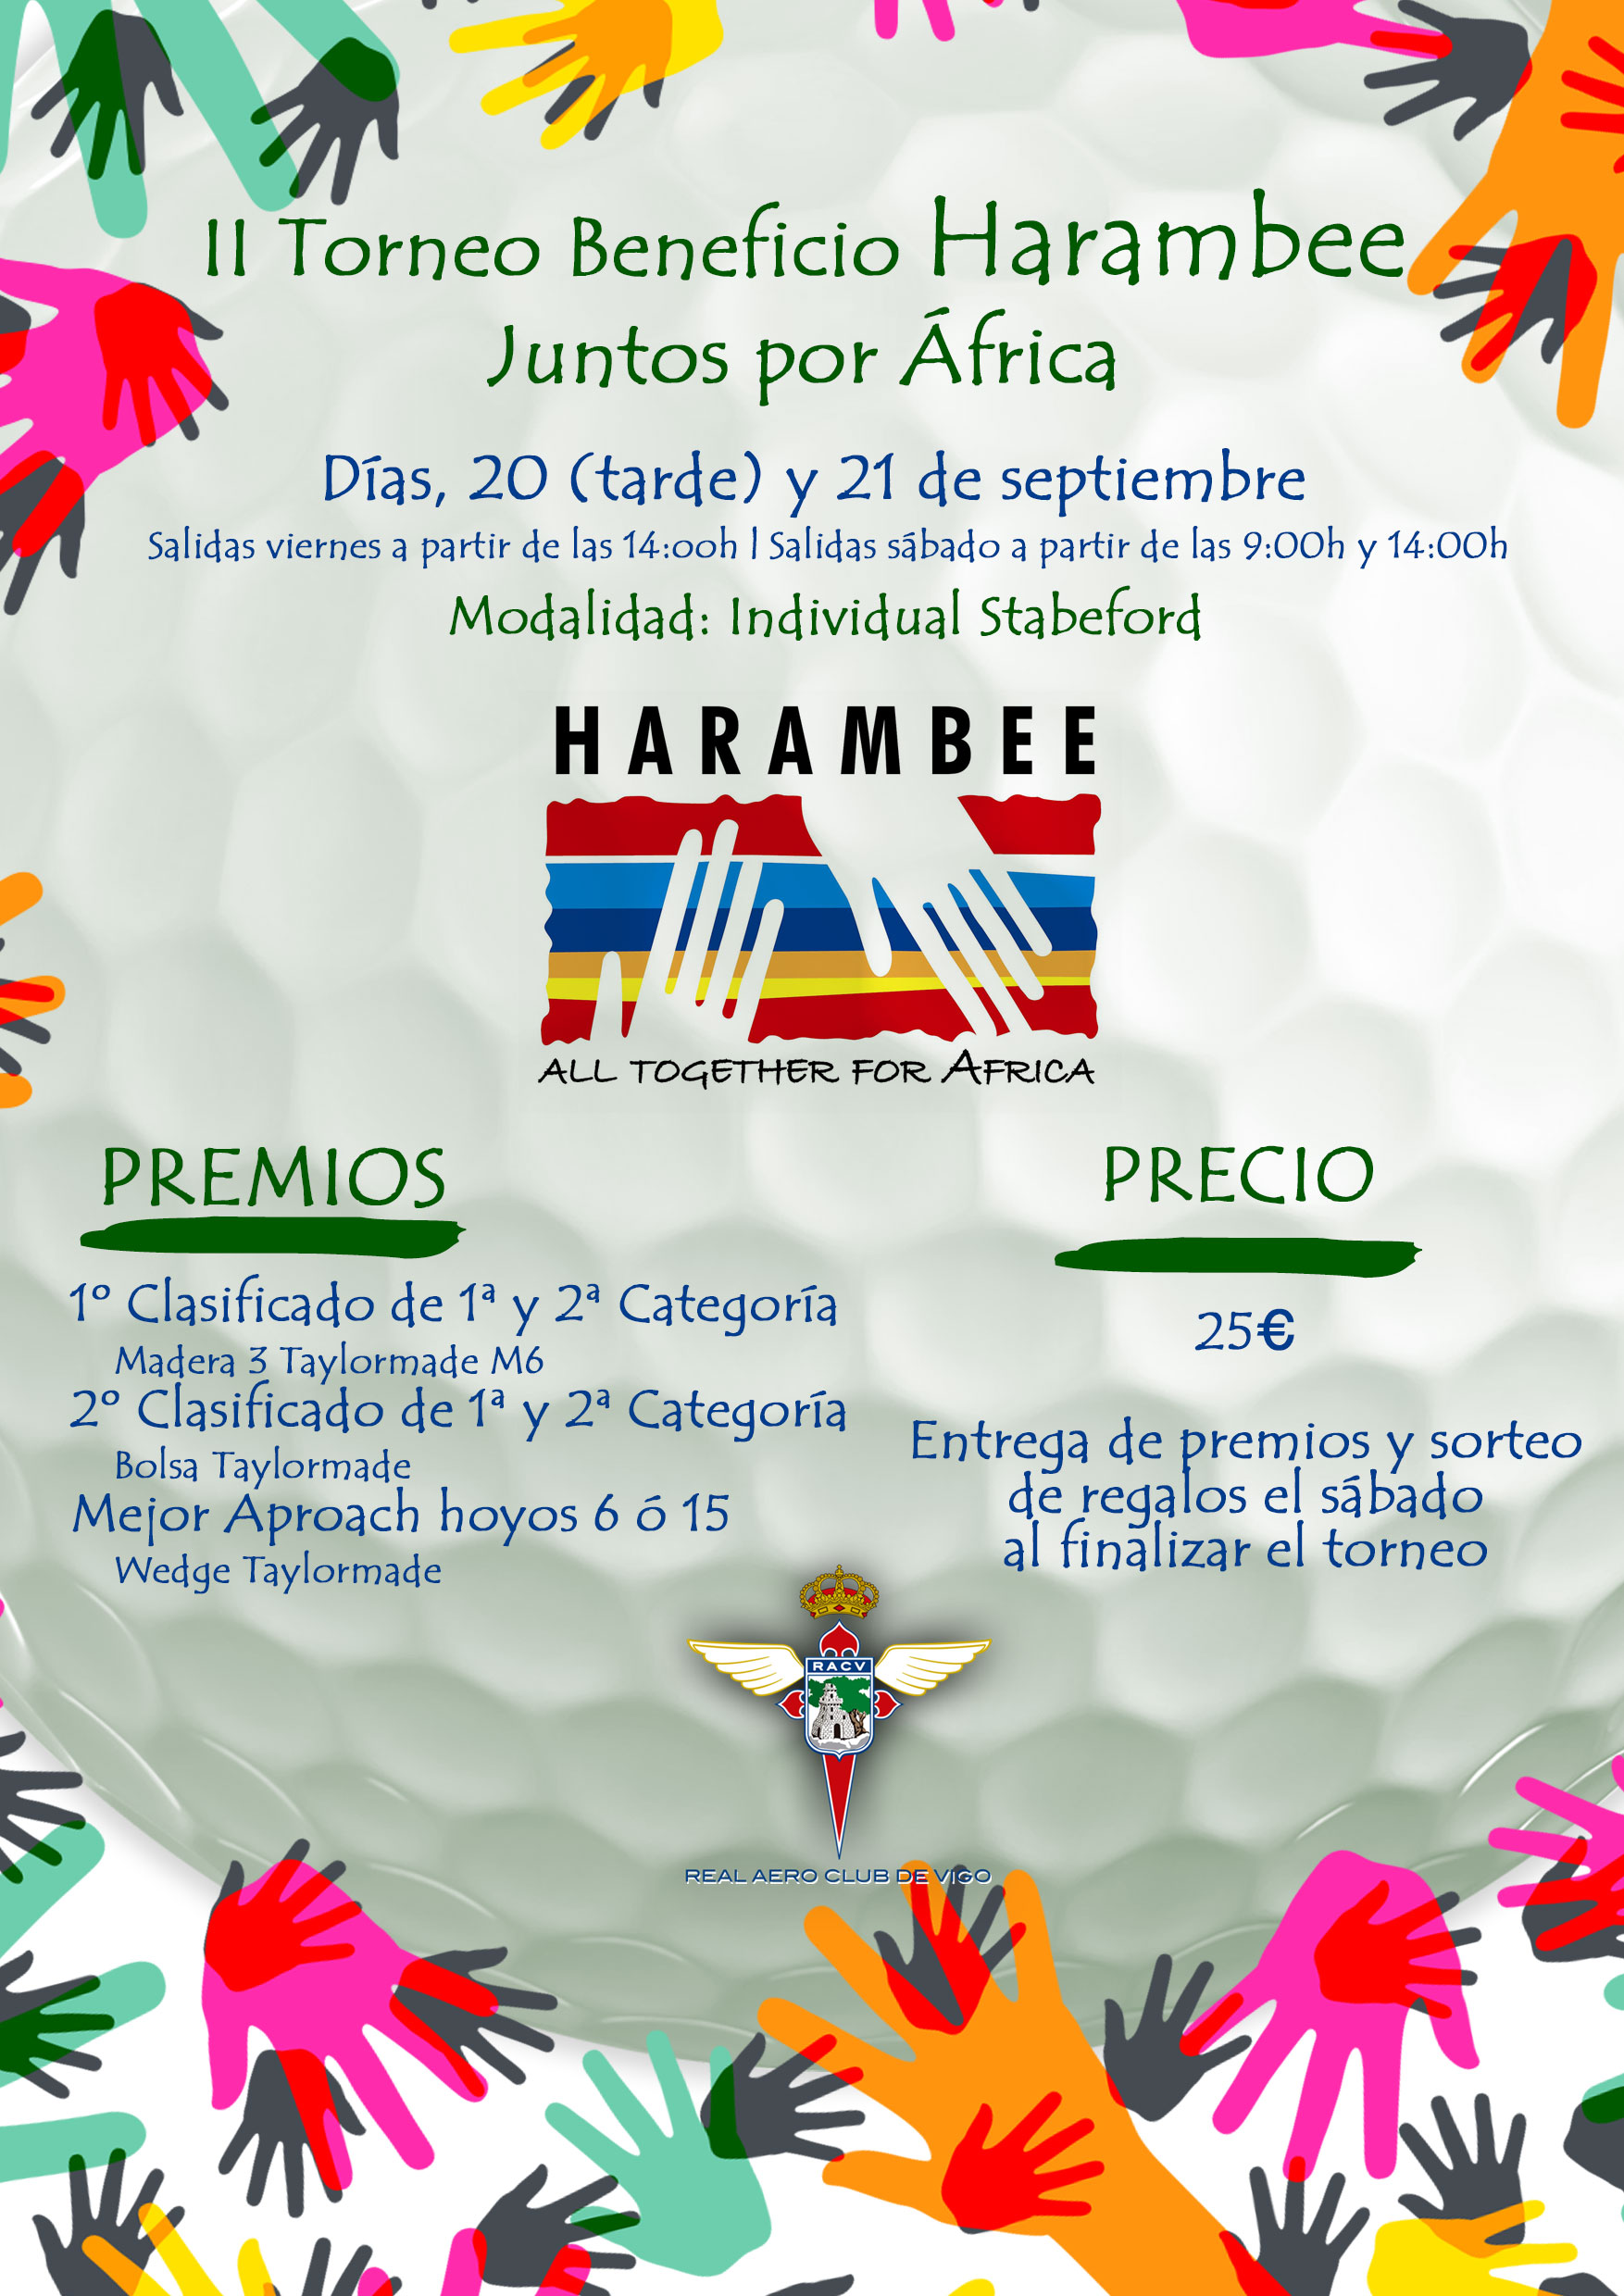 a3-torneo-harambee-2019